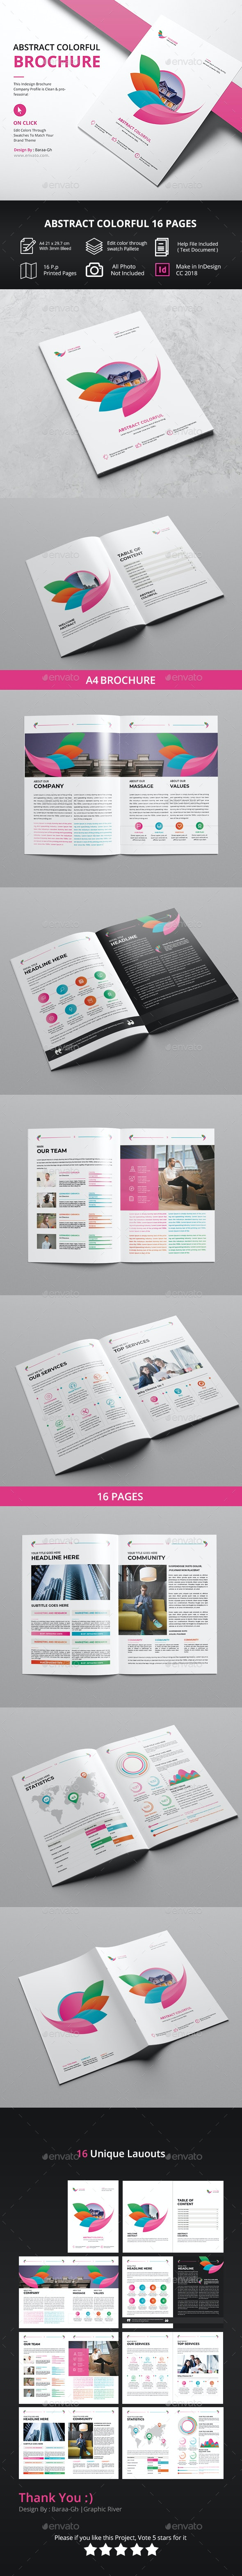 Abstract Colorful Brochure - Corporate Brochures